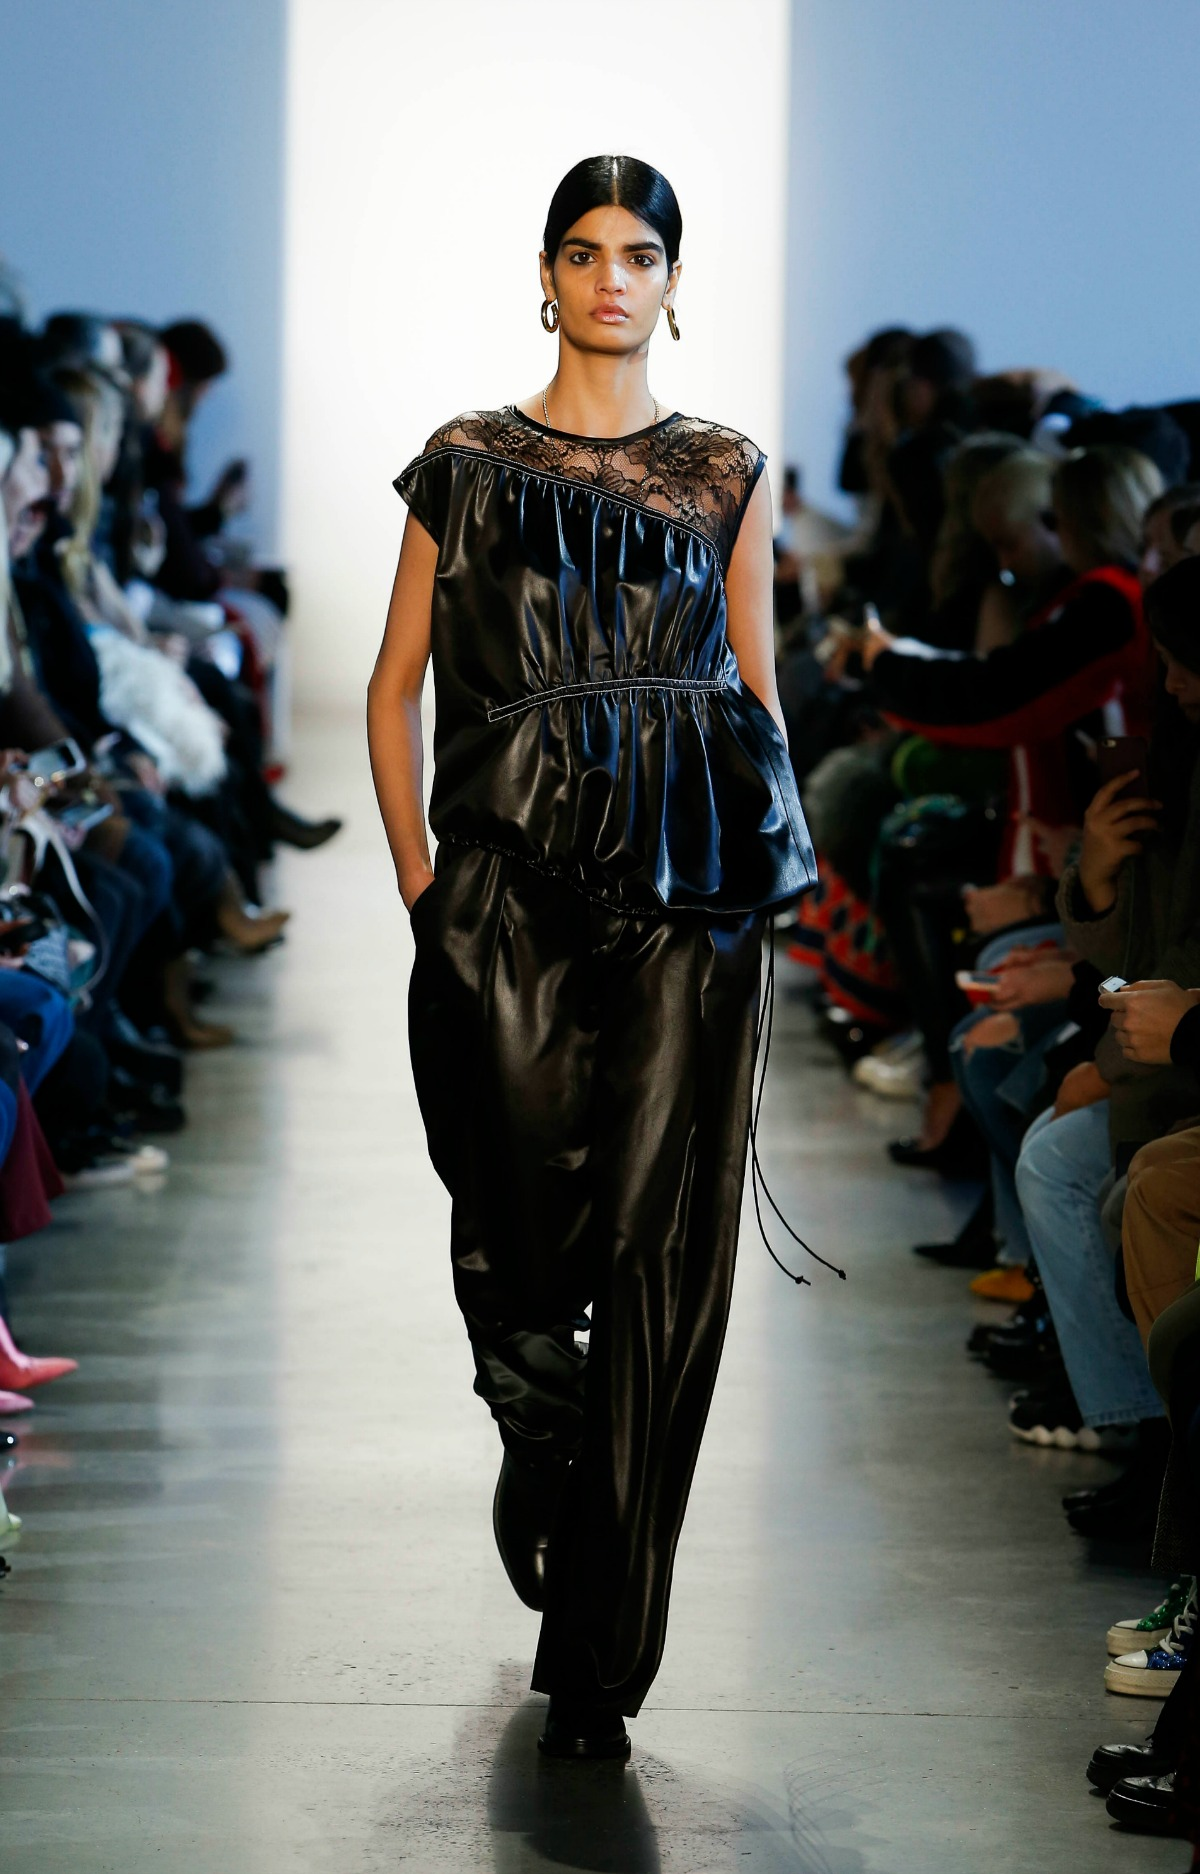 COLOVOS Fall 2018 Runway at NYFW I Millennial Faux Leather Blouse and Trousers #NYFW #WinterFashion